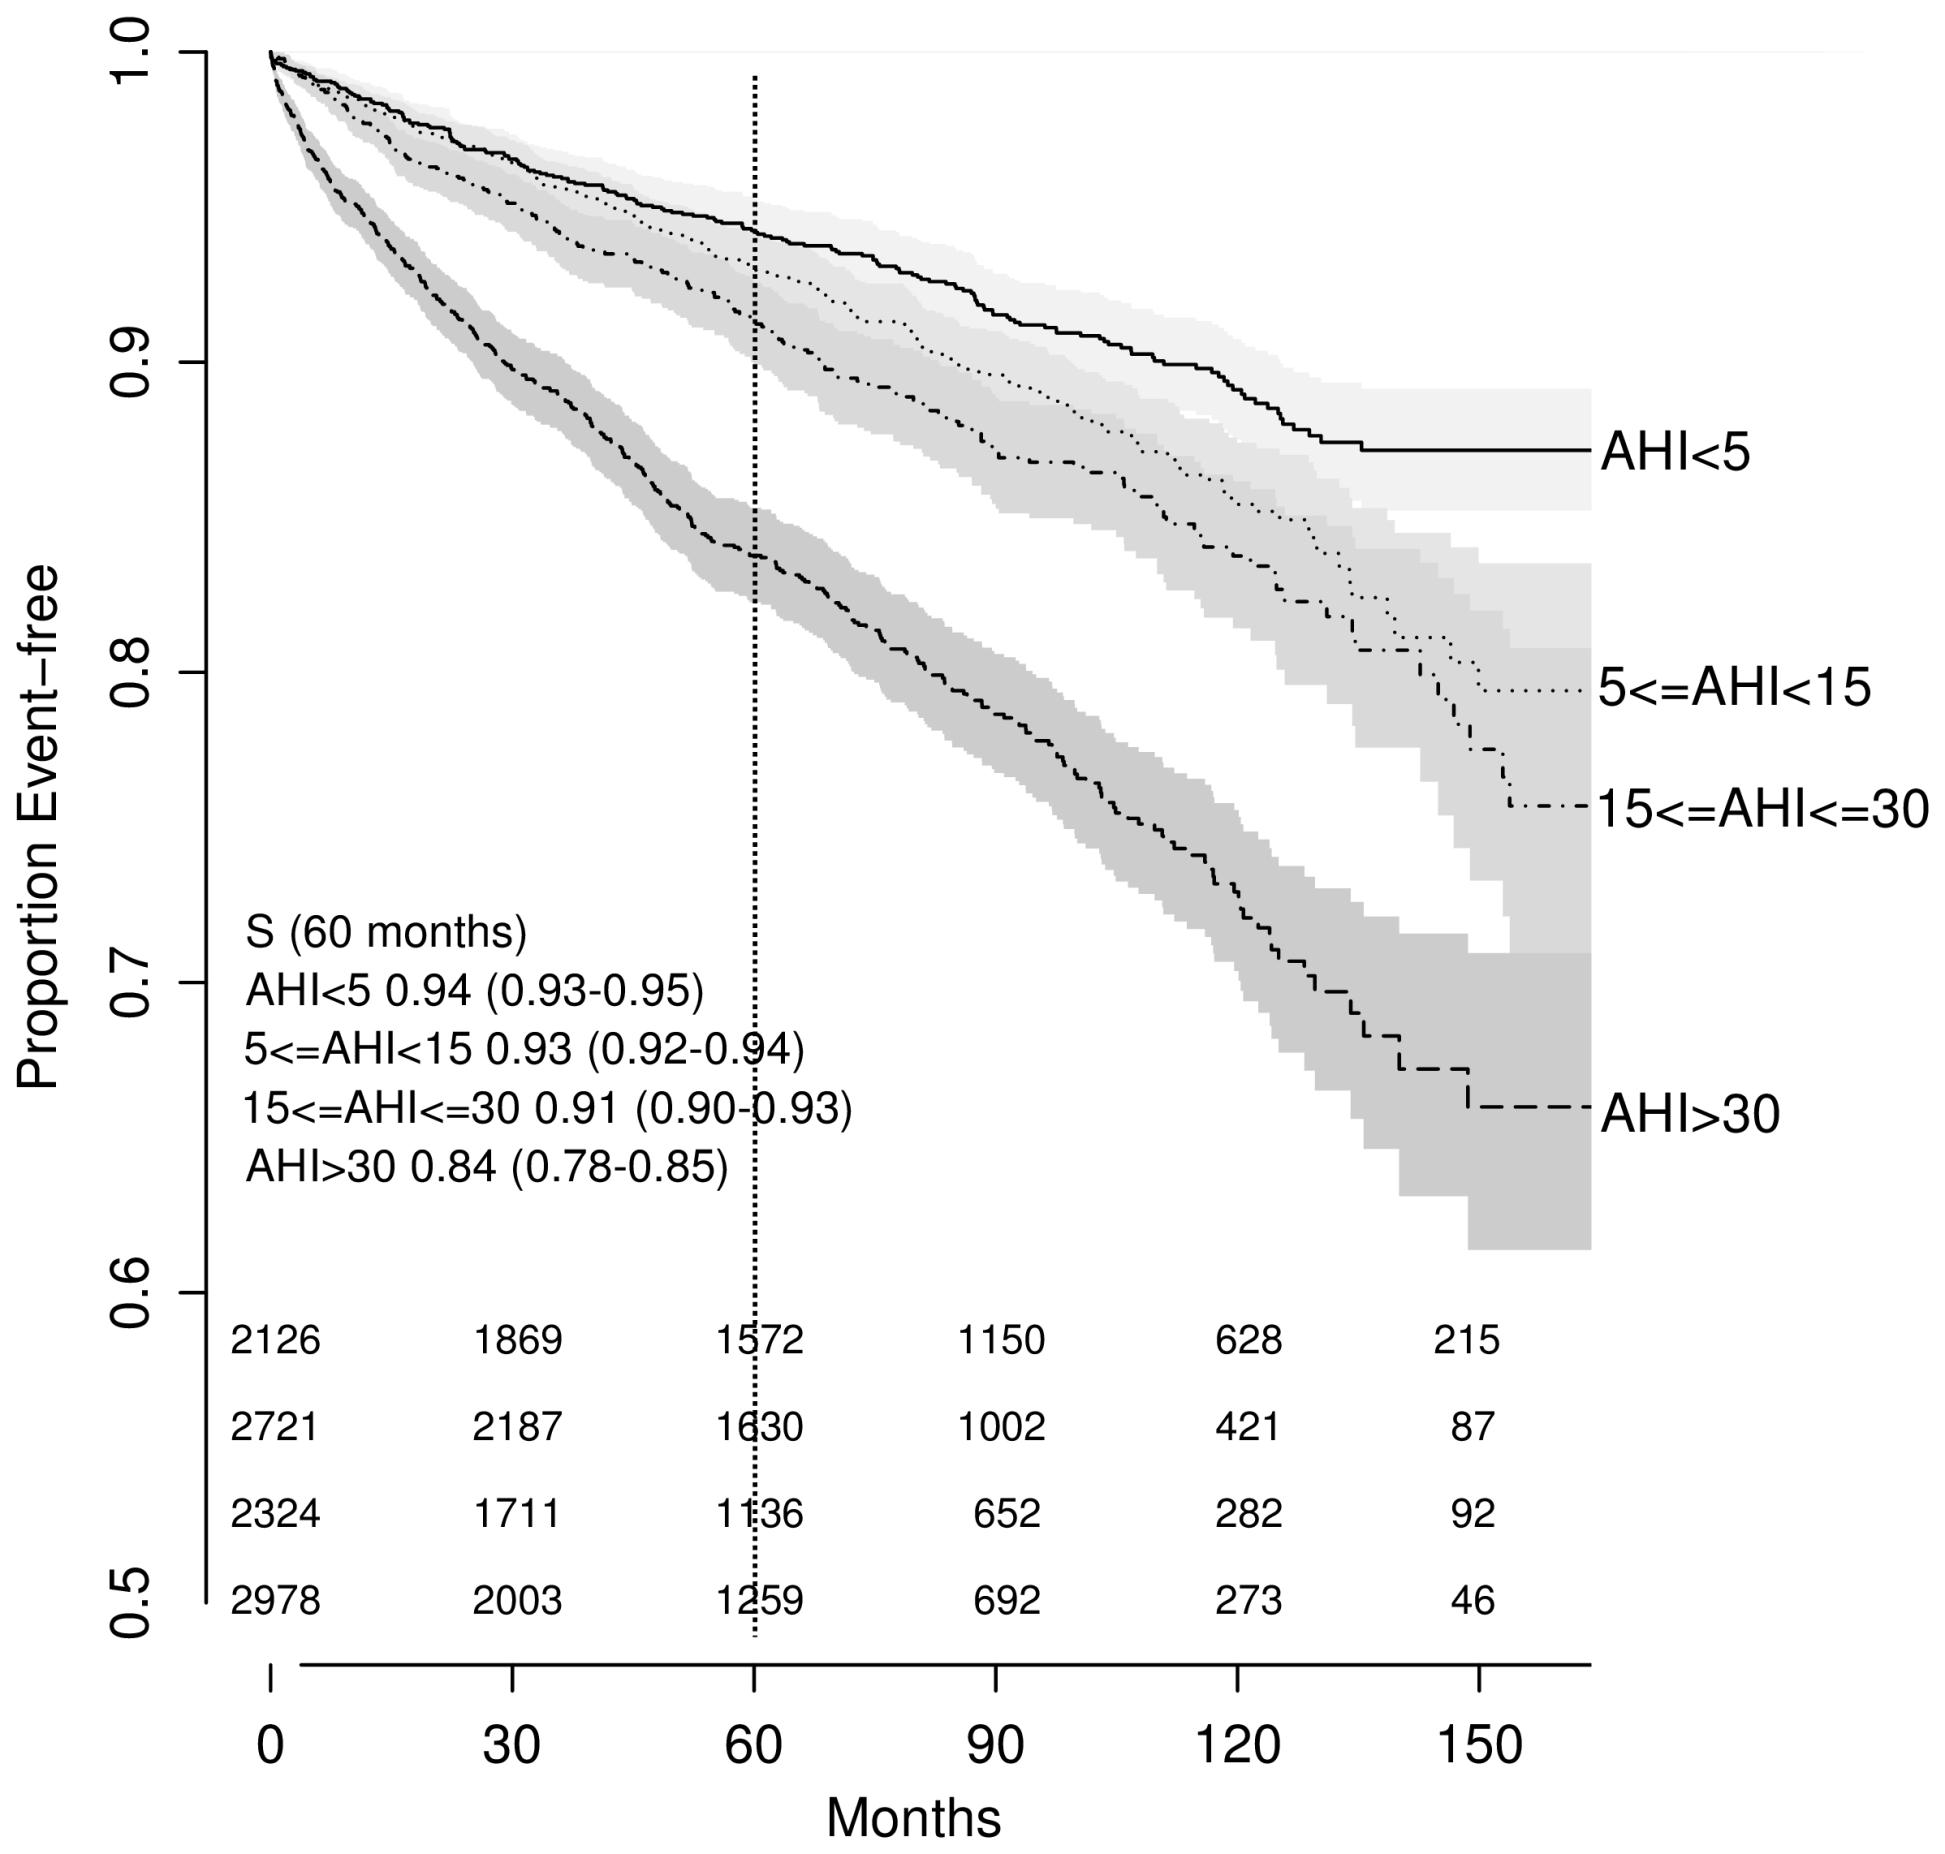 Unadjusted Kaplan-Meier survival curves by obstructive sleep apnea severity as expressed by the apnea-hypopnea index.